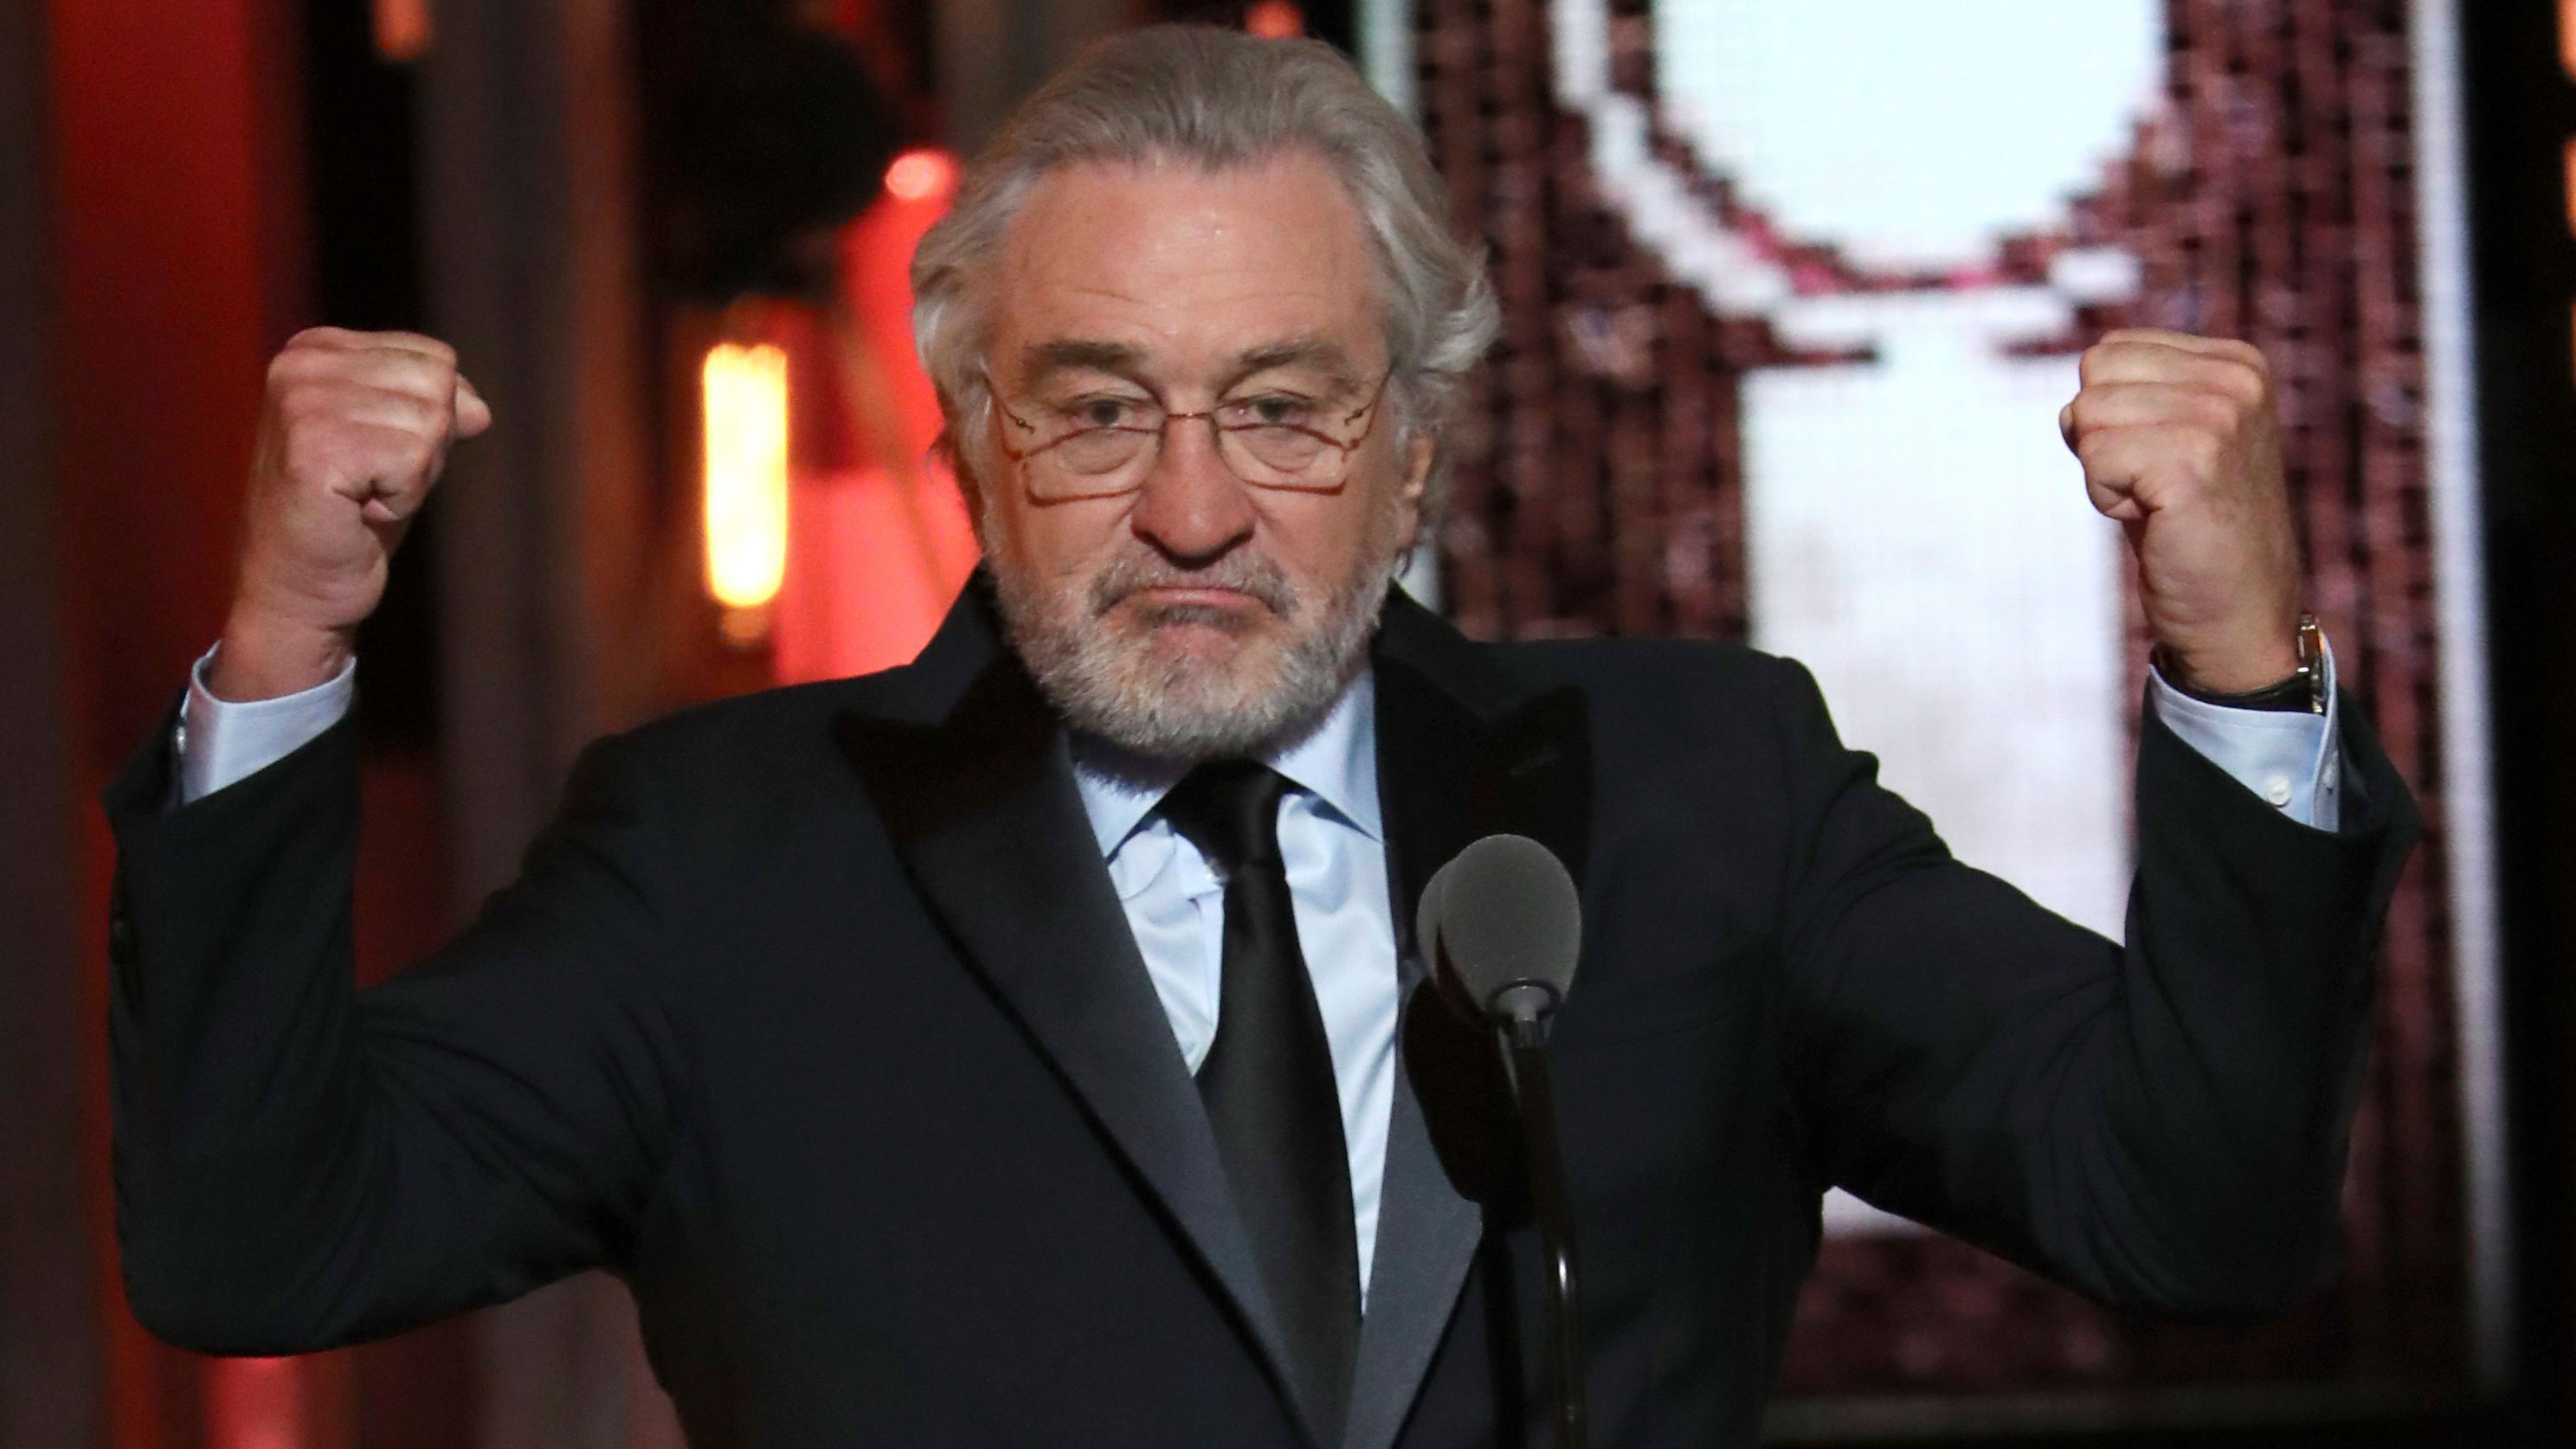 Robert De Niro apologizes to Canadians for Trump